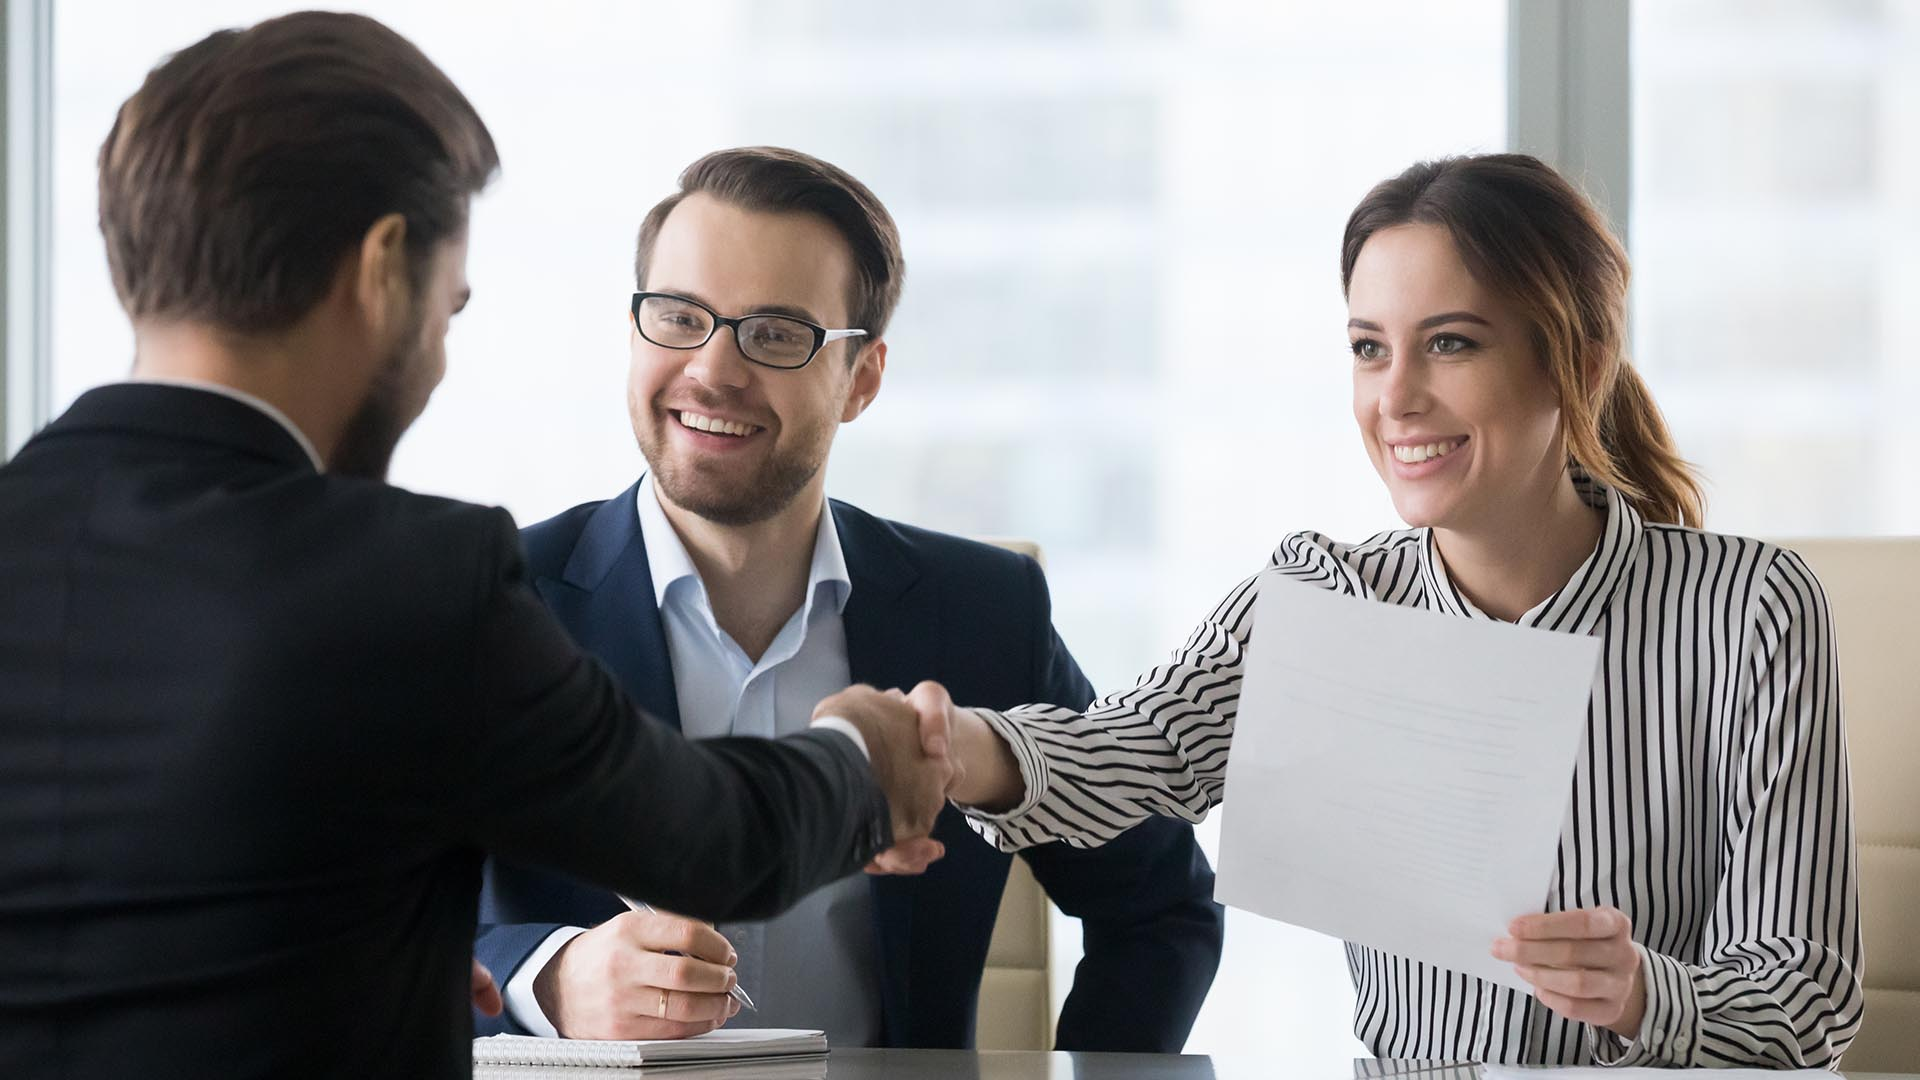 Photo of two business men shaking hands, with Businessness woman next to them